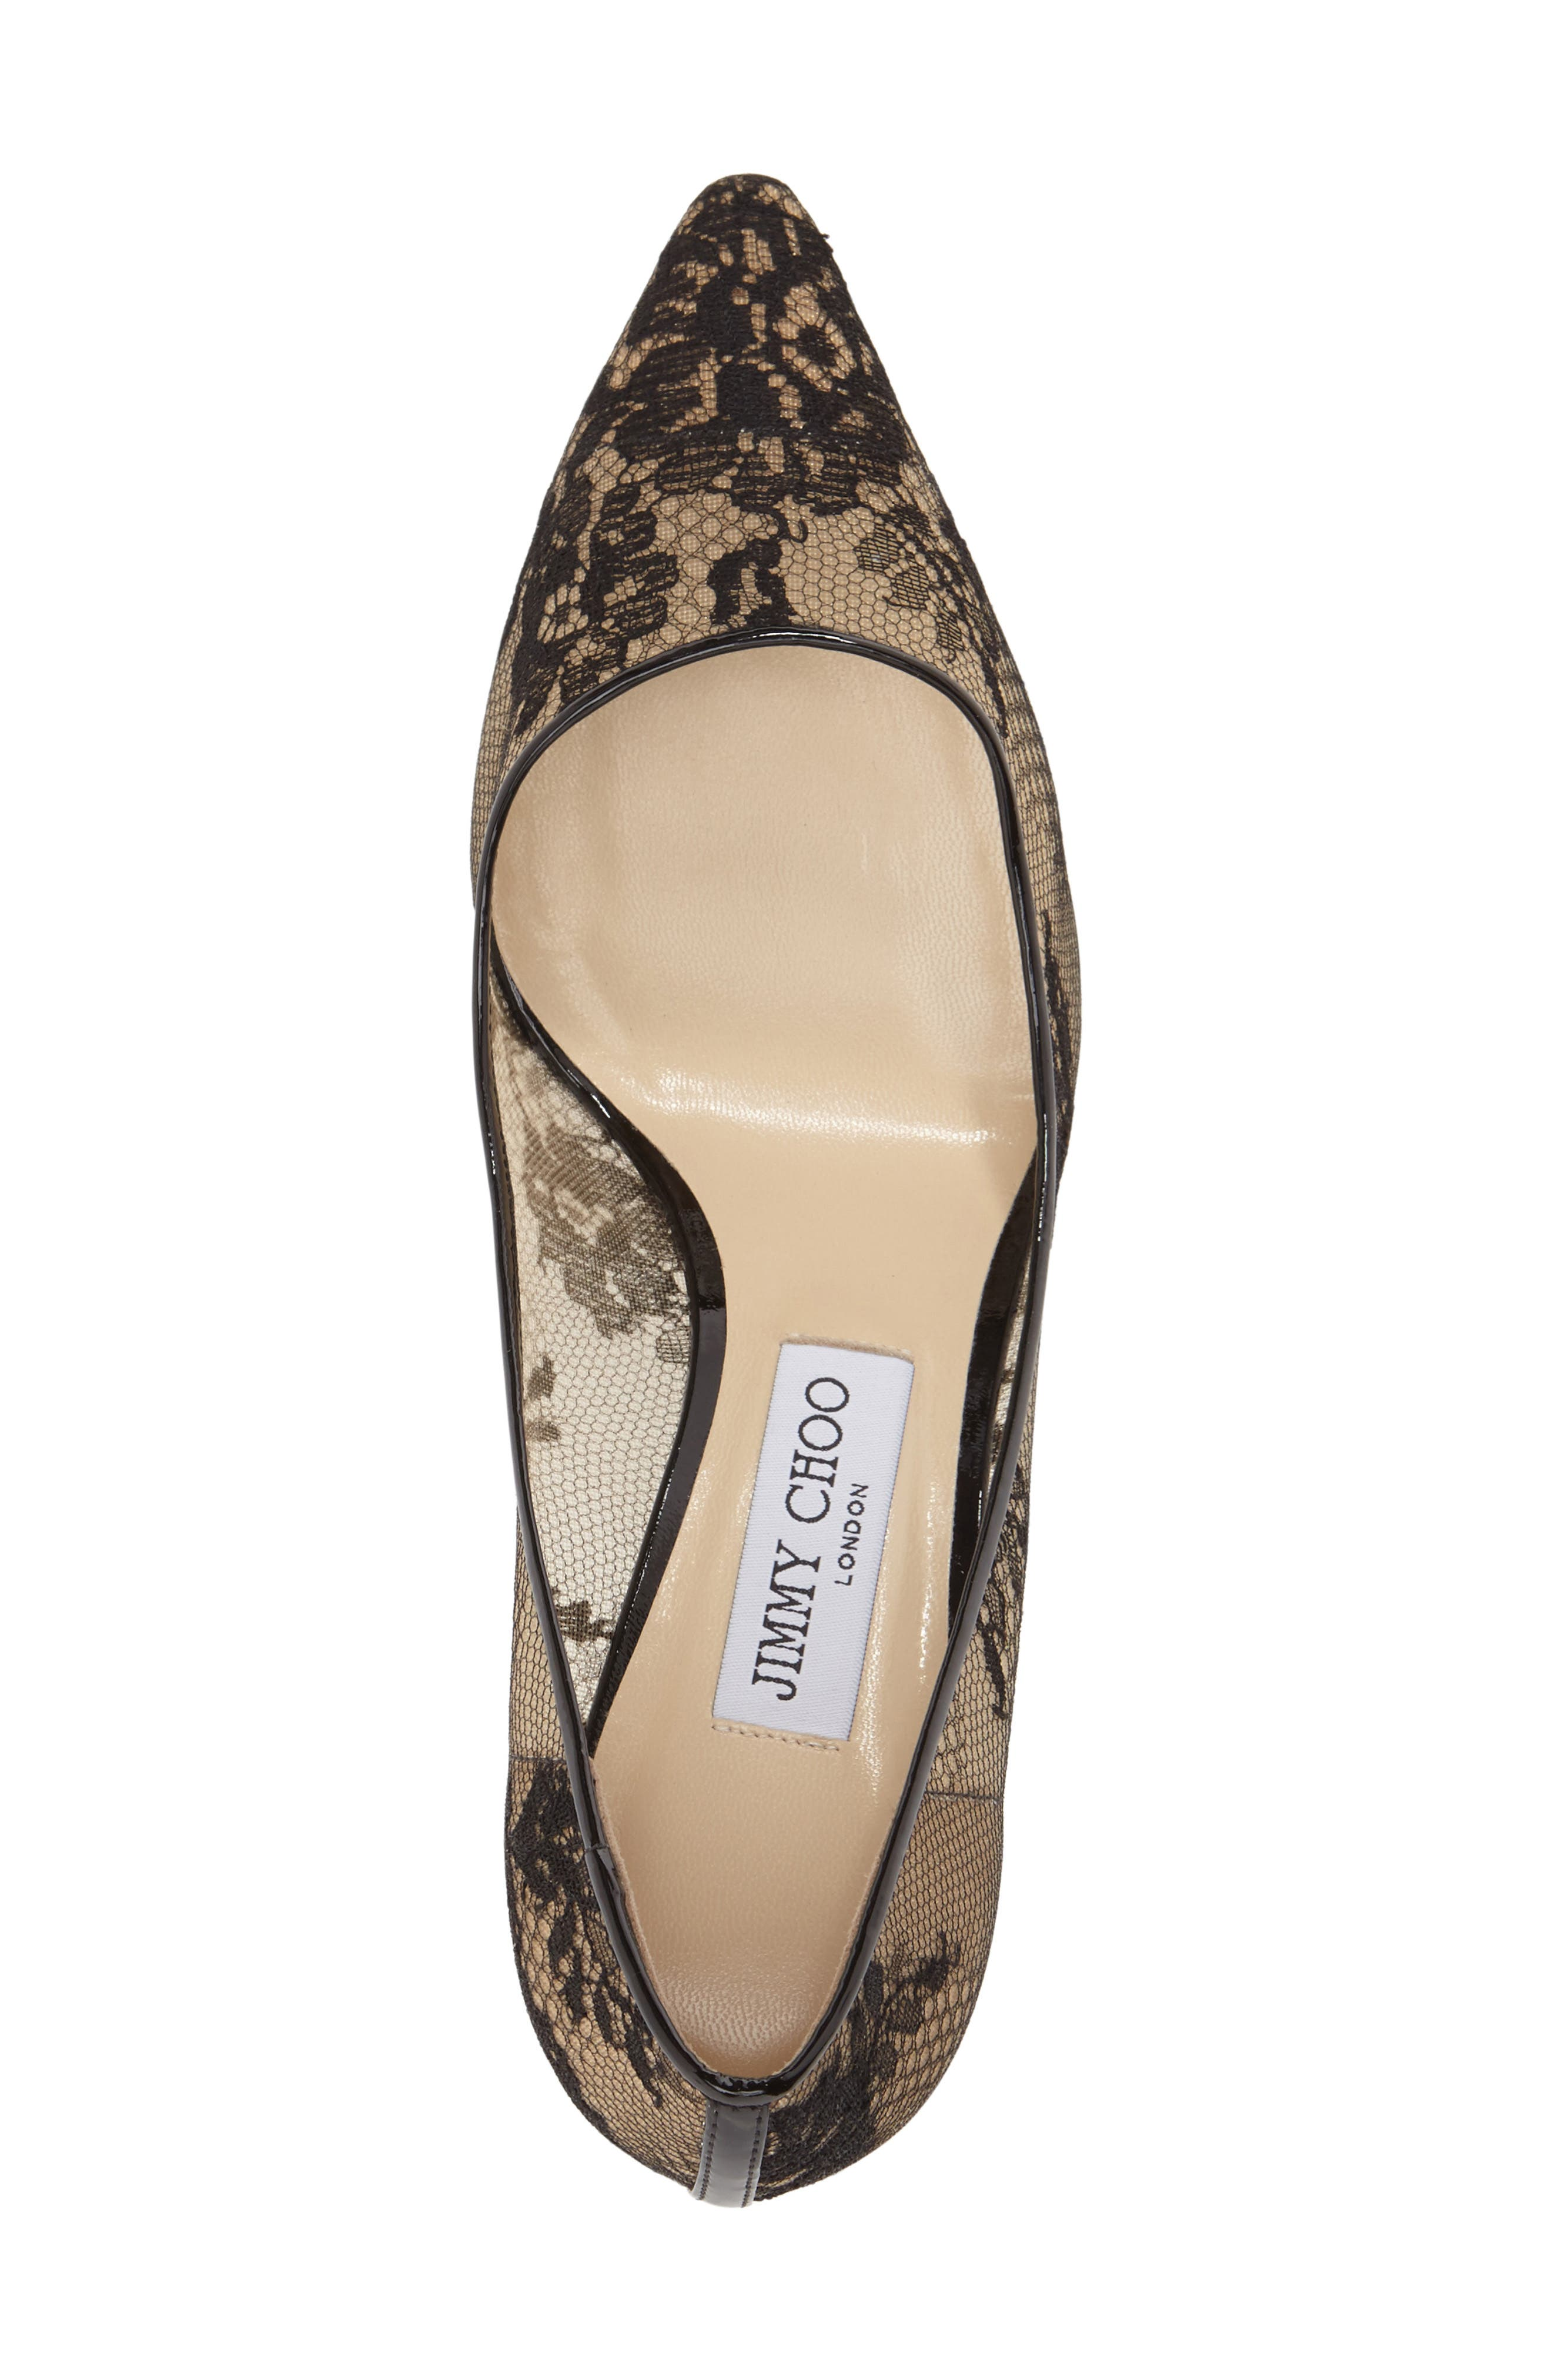 JIMMY CHOO,                             'Romy' Lace Pointy Toe Pump,                             Alternate thumbnail 6, color,                             002